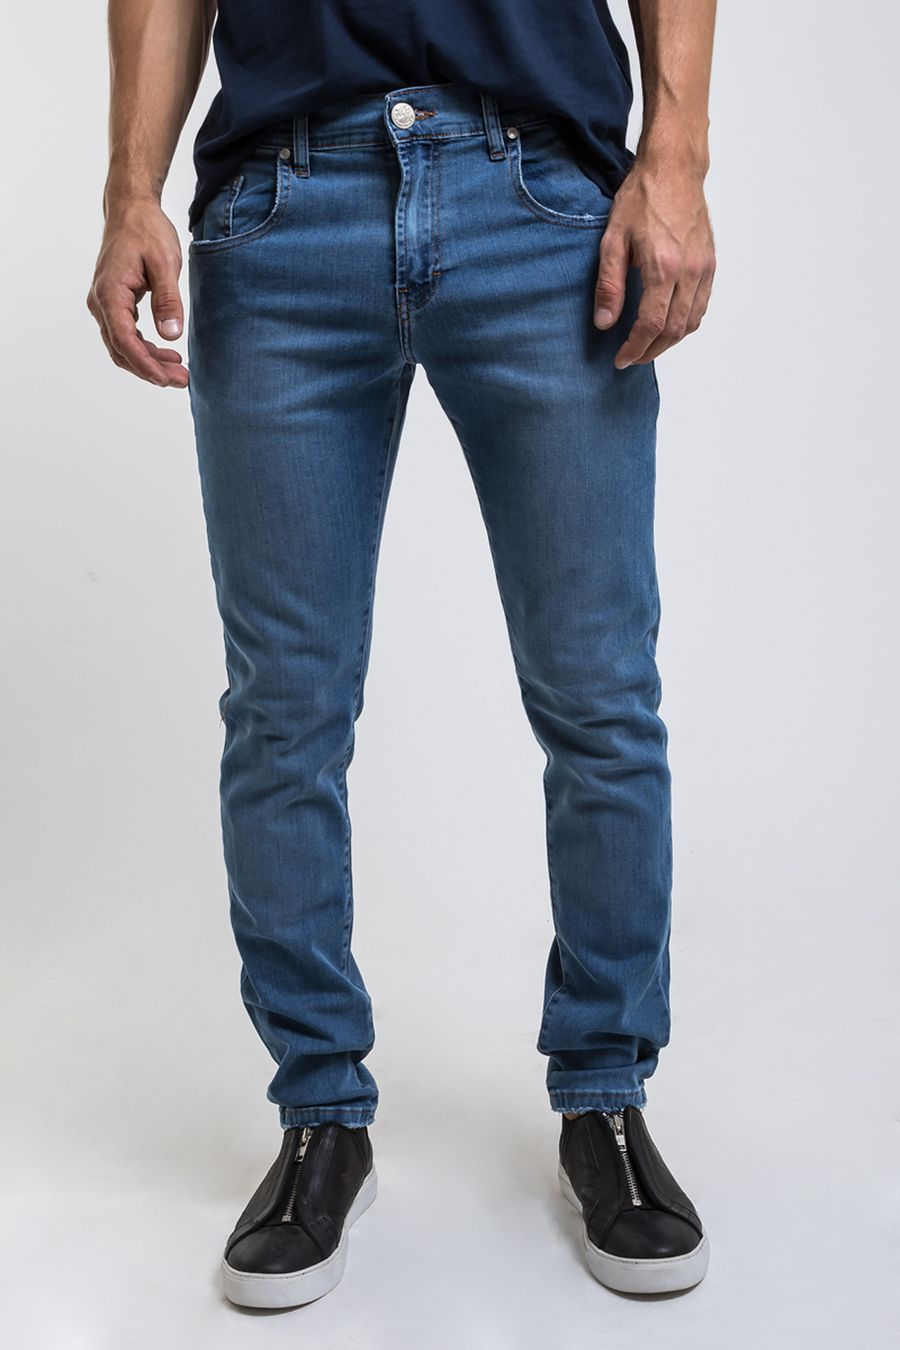 JEAN-DENIM-RENZO